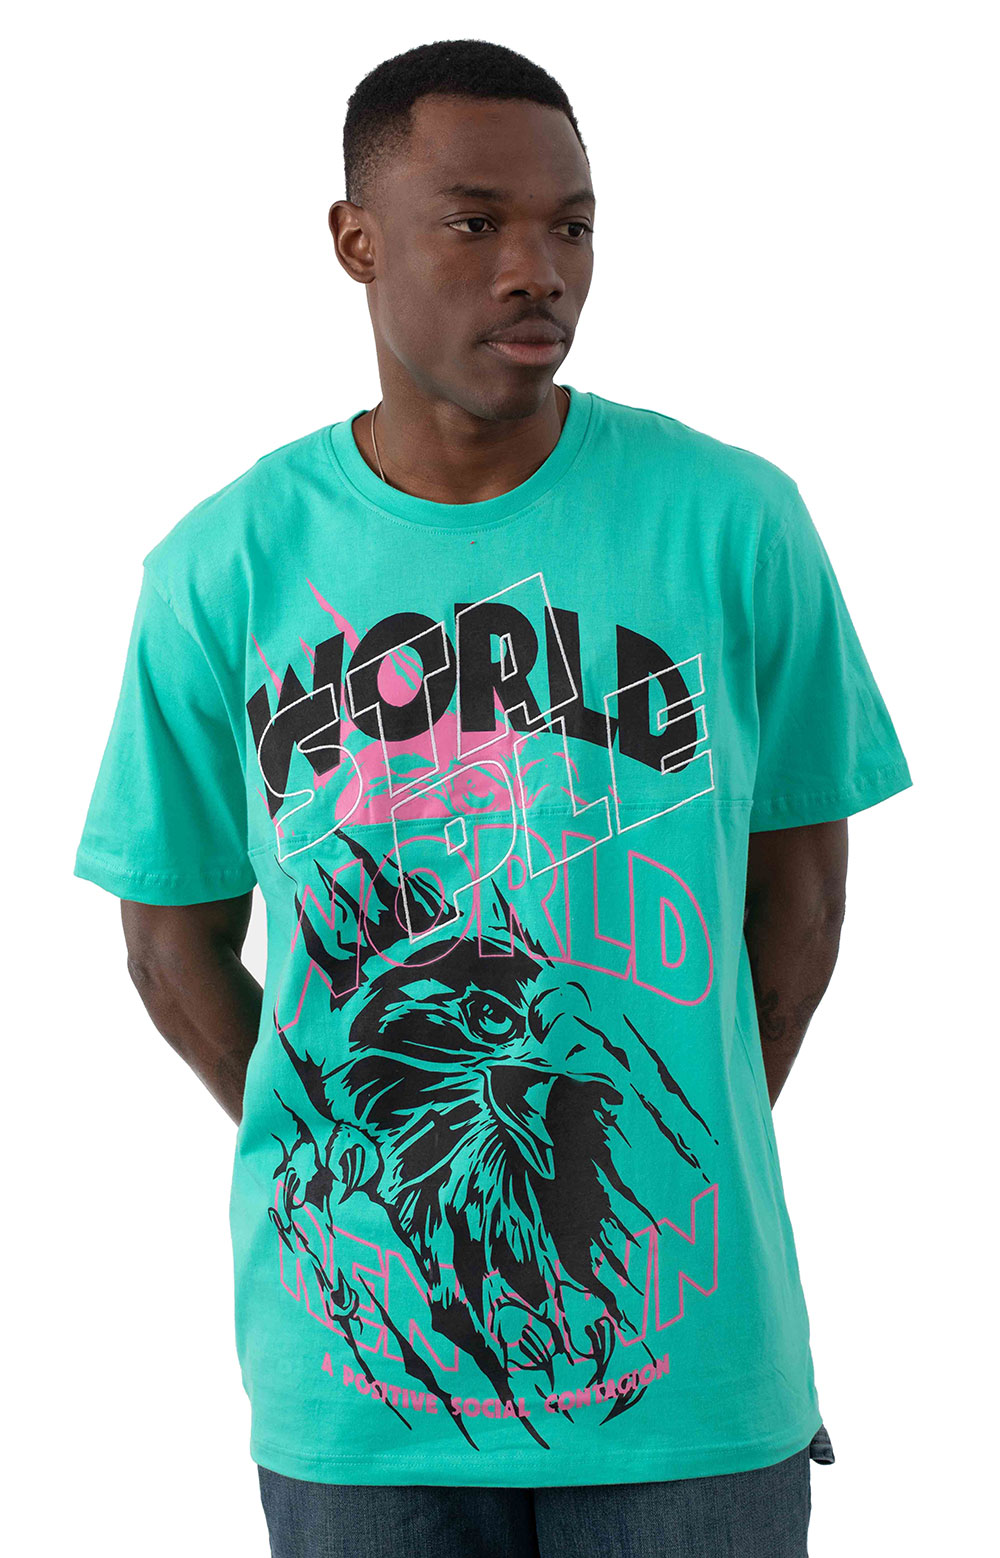 Rebels Split T-Shirt - Teal